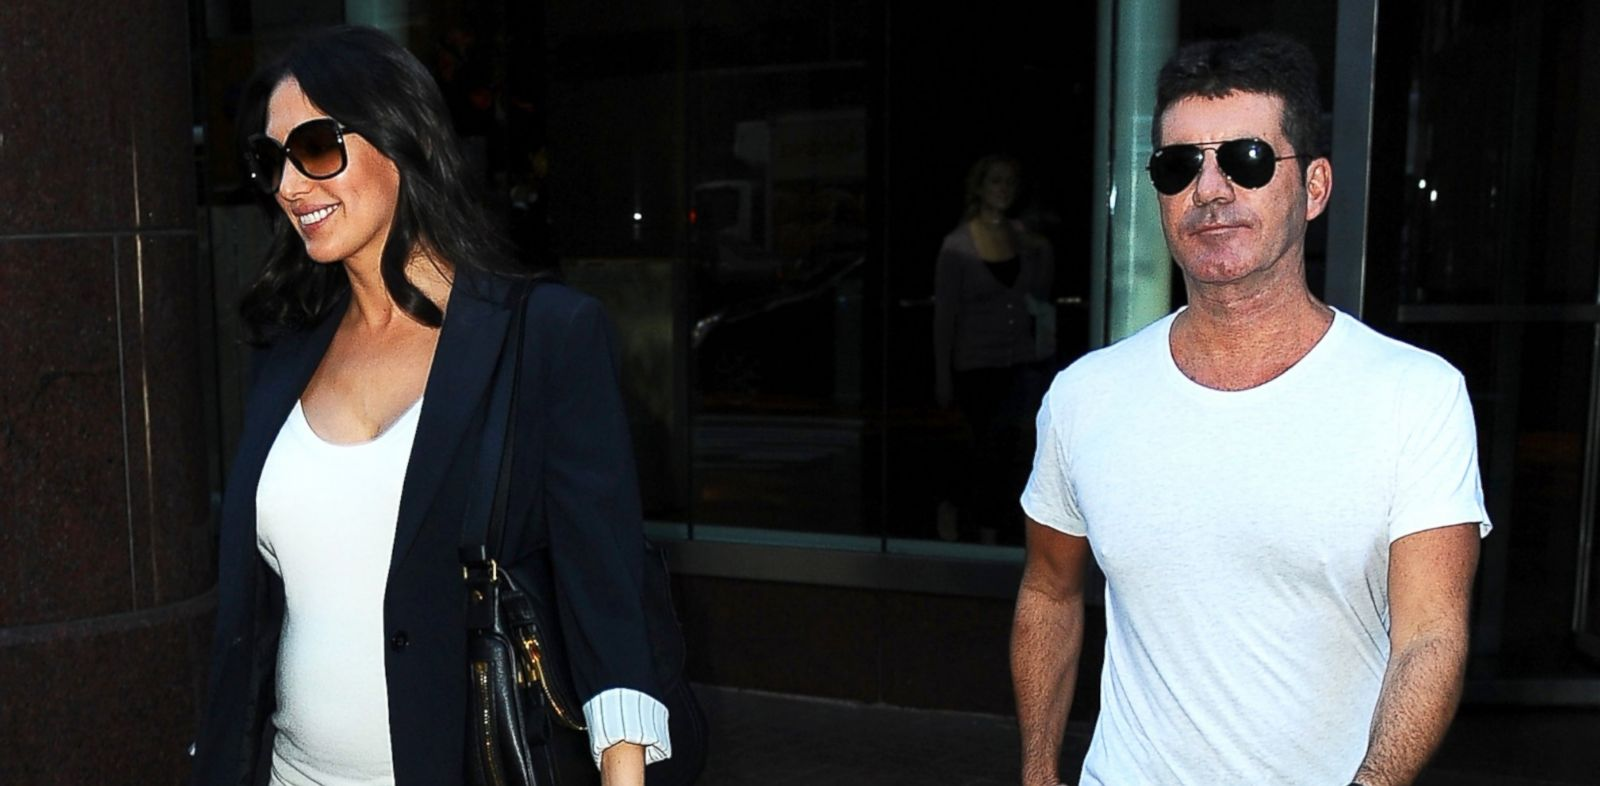 PHOTO: Lauren Silverman and Simon Cowell are seen in Soho, Sept. 19, 2013 in New York City.